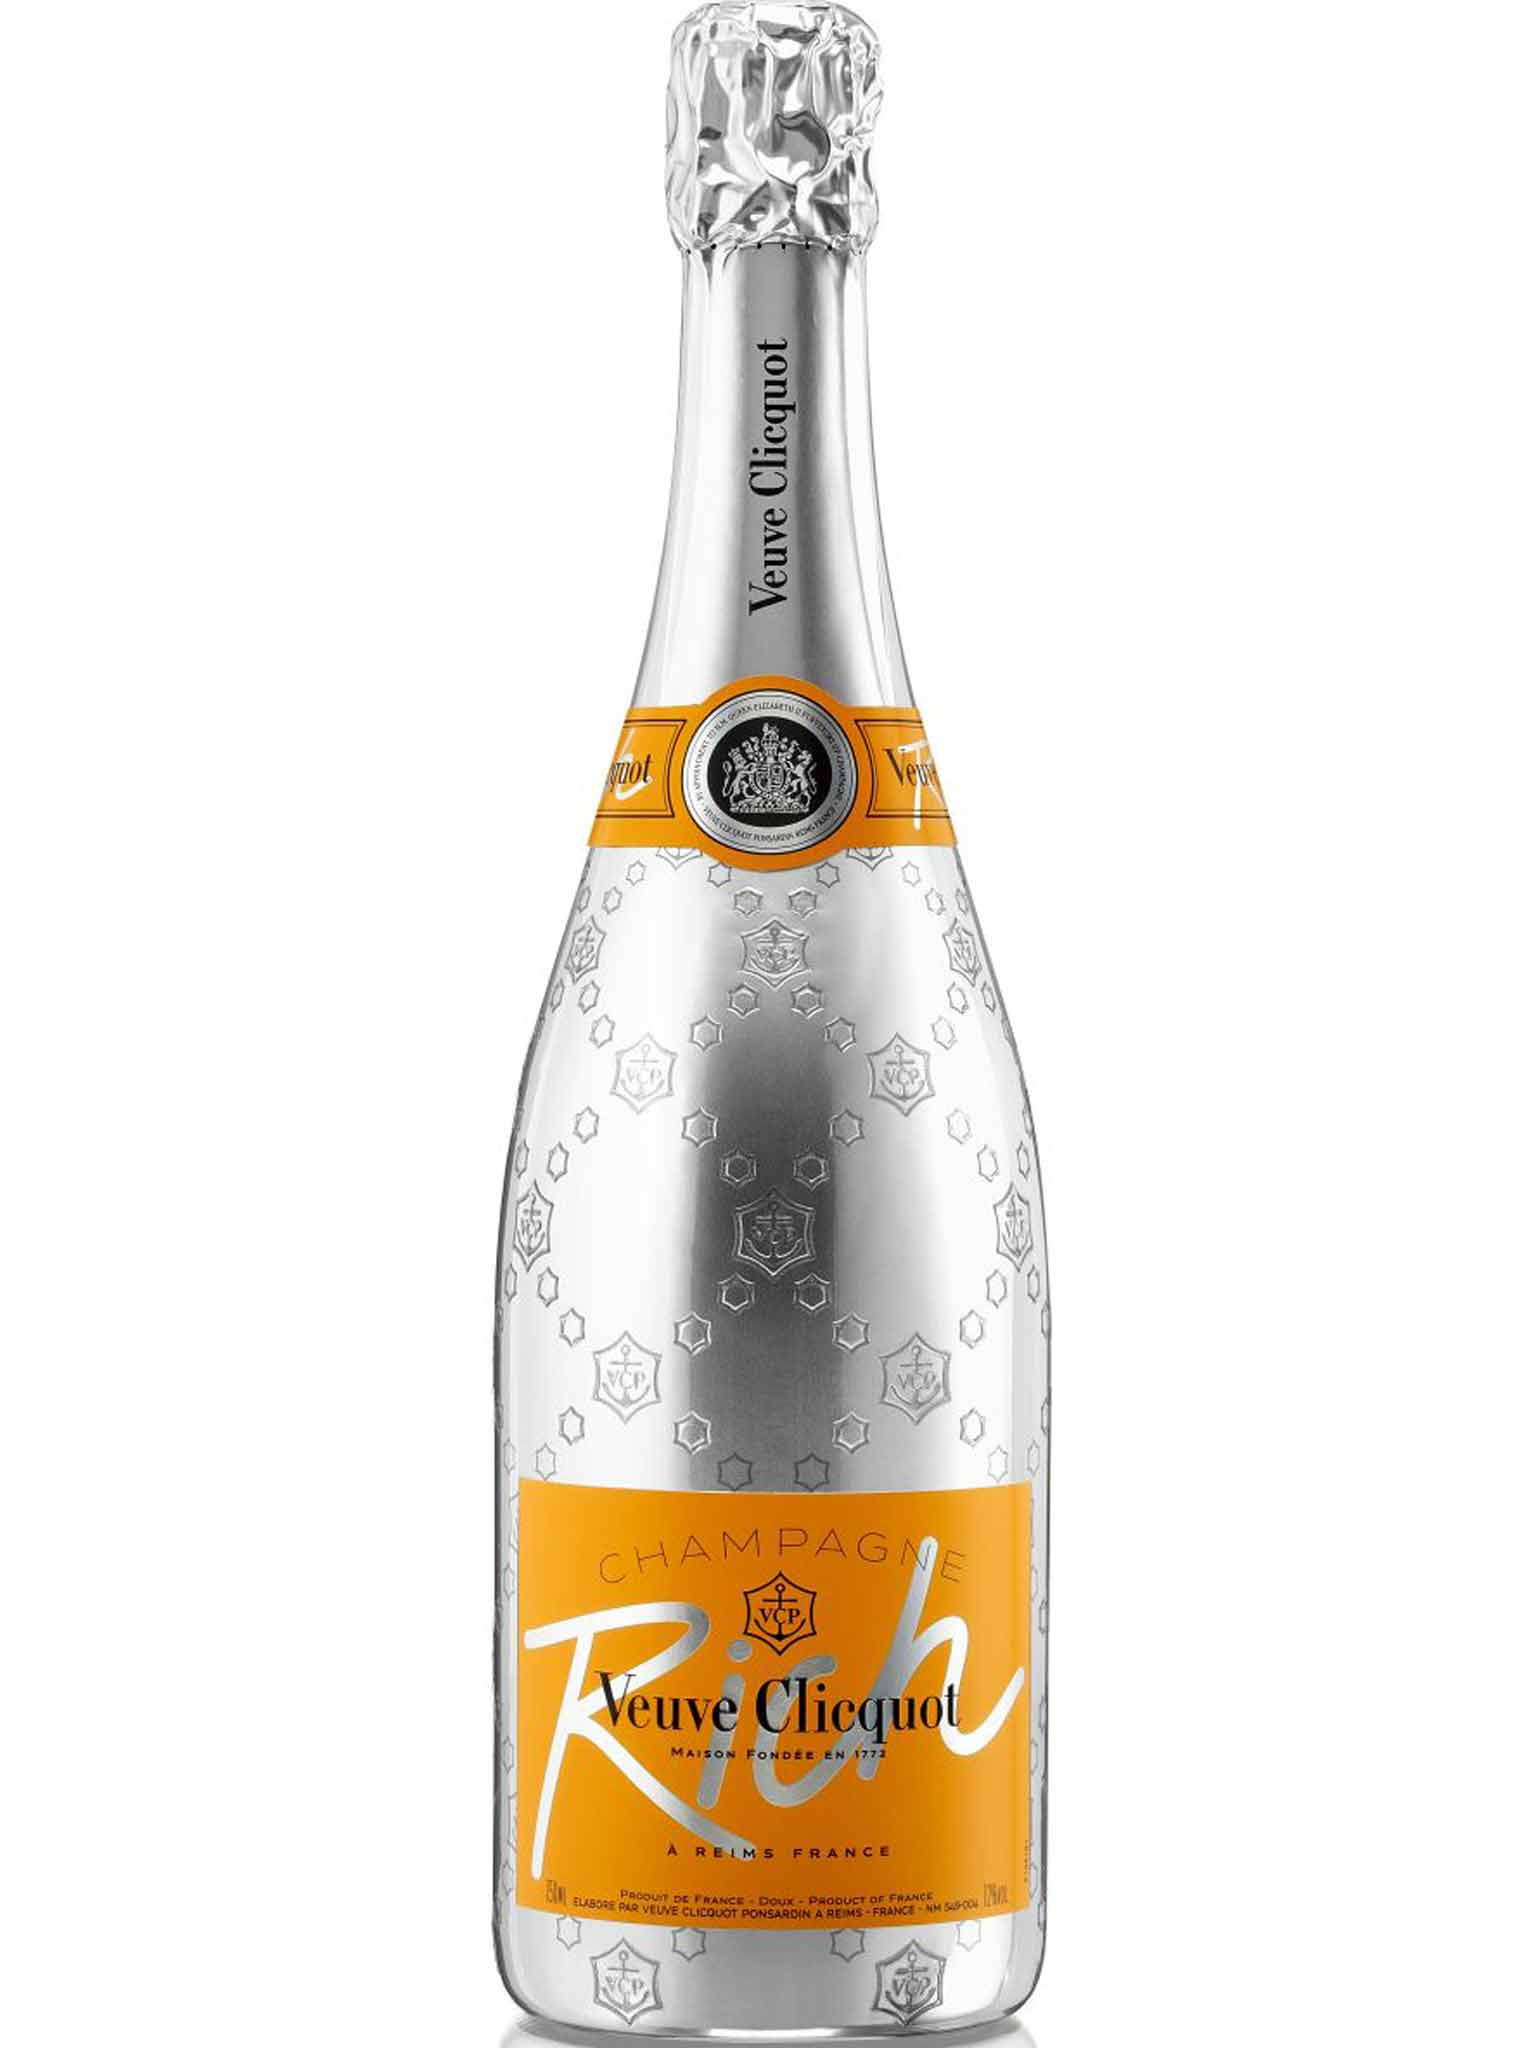 Veuve Clicquot Rich: How sweeter, softer champagnes are attracting